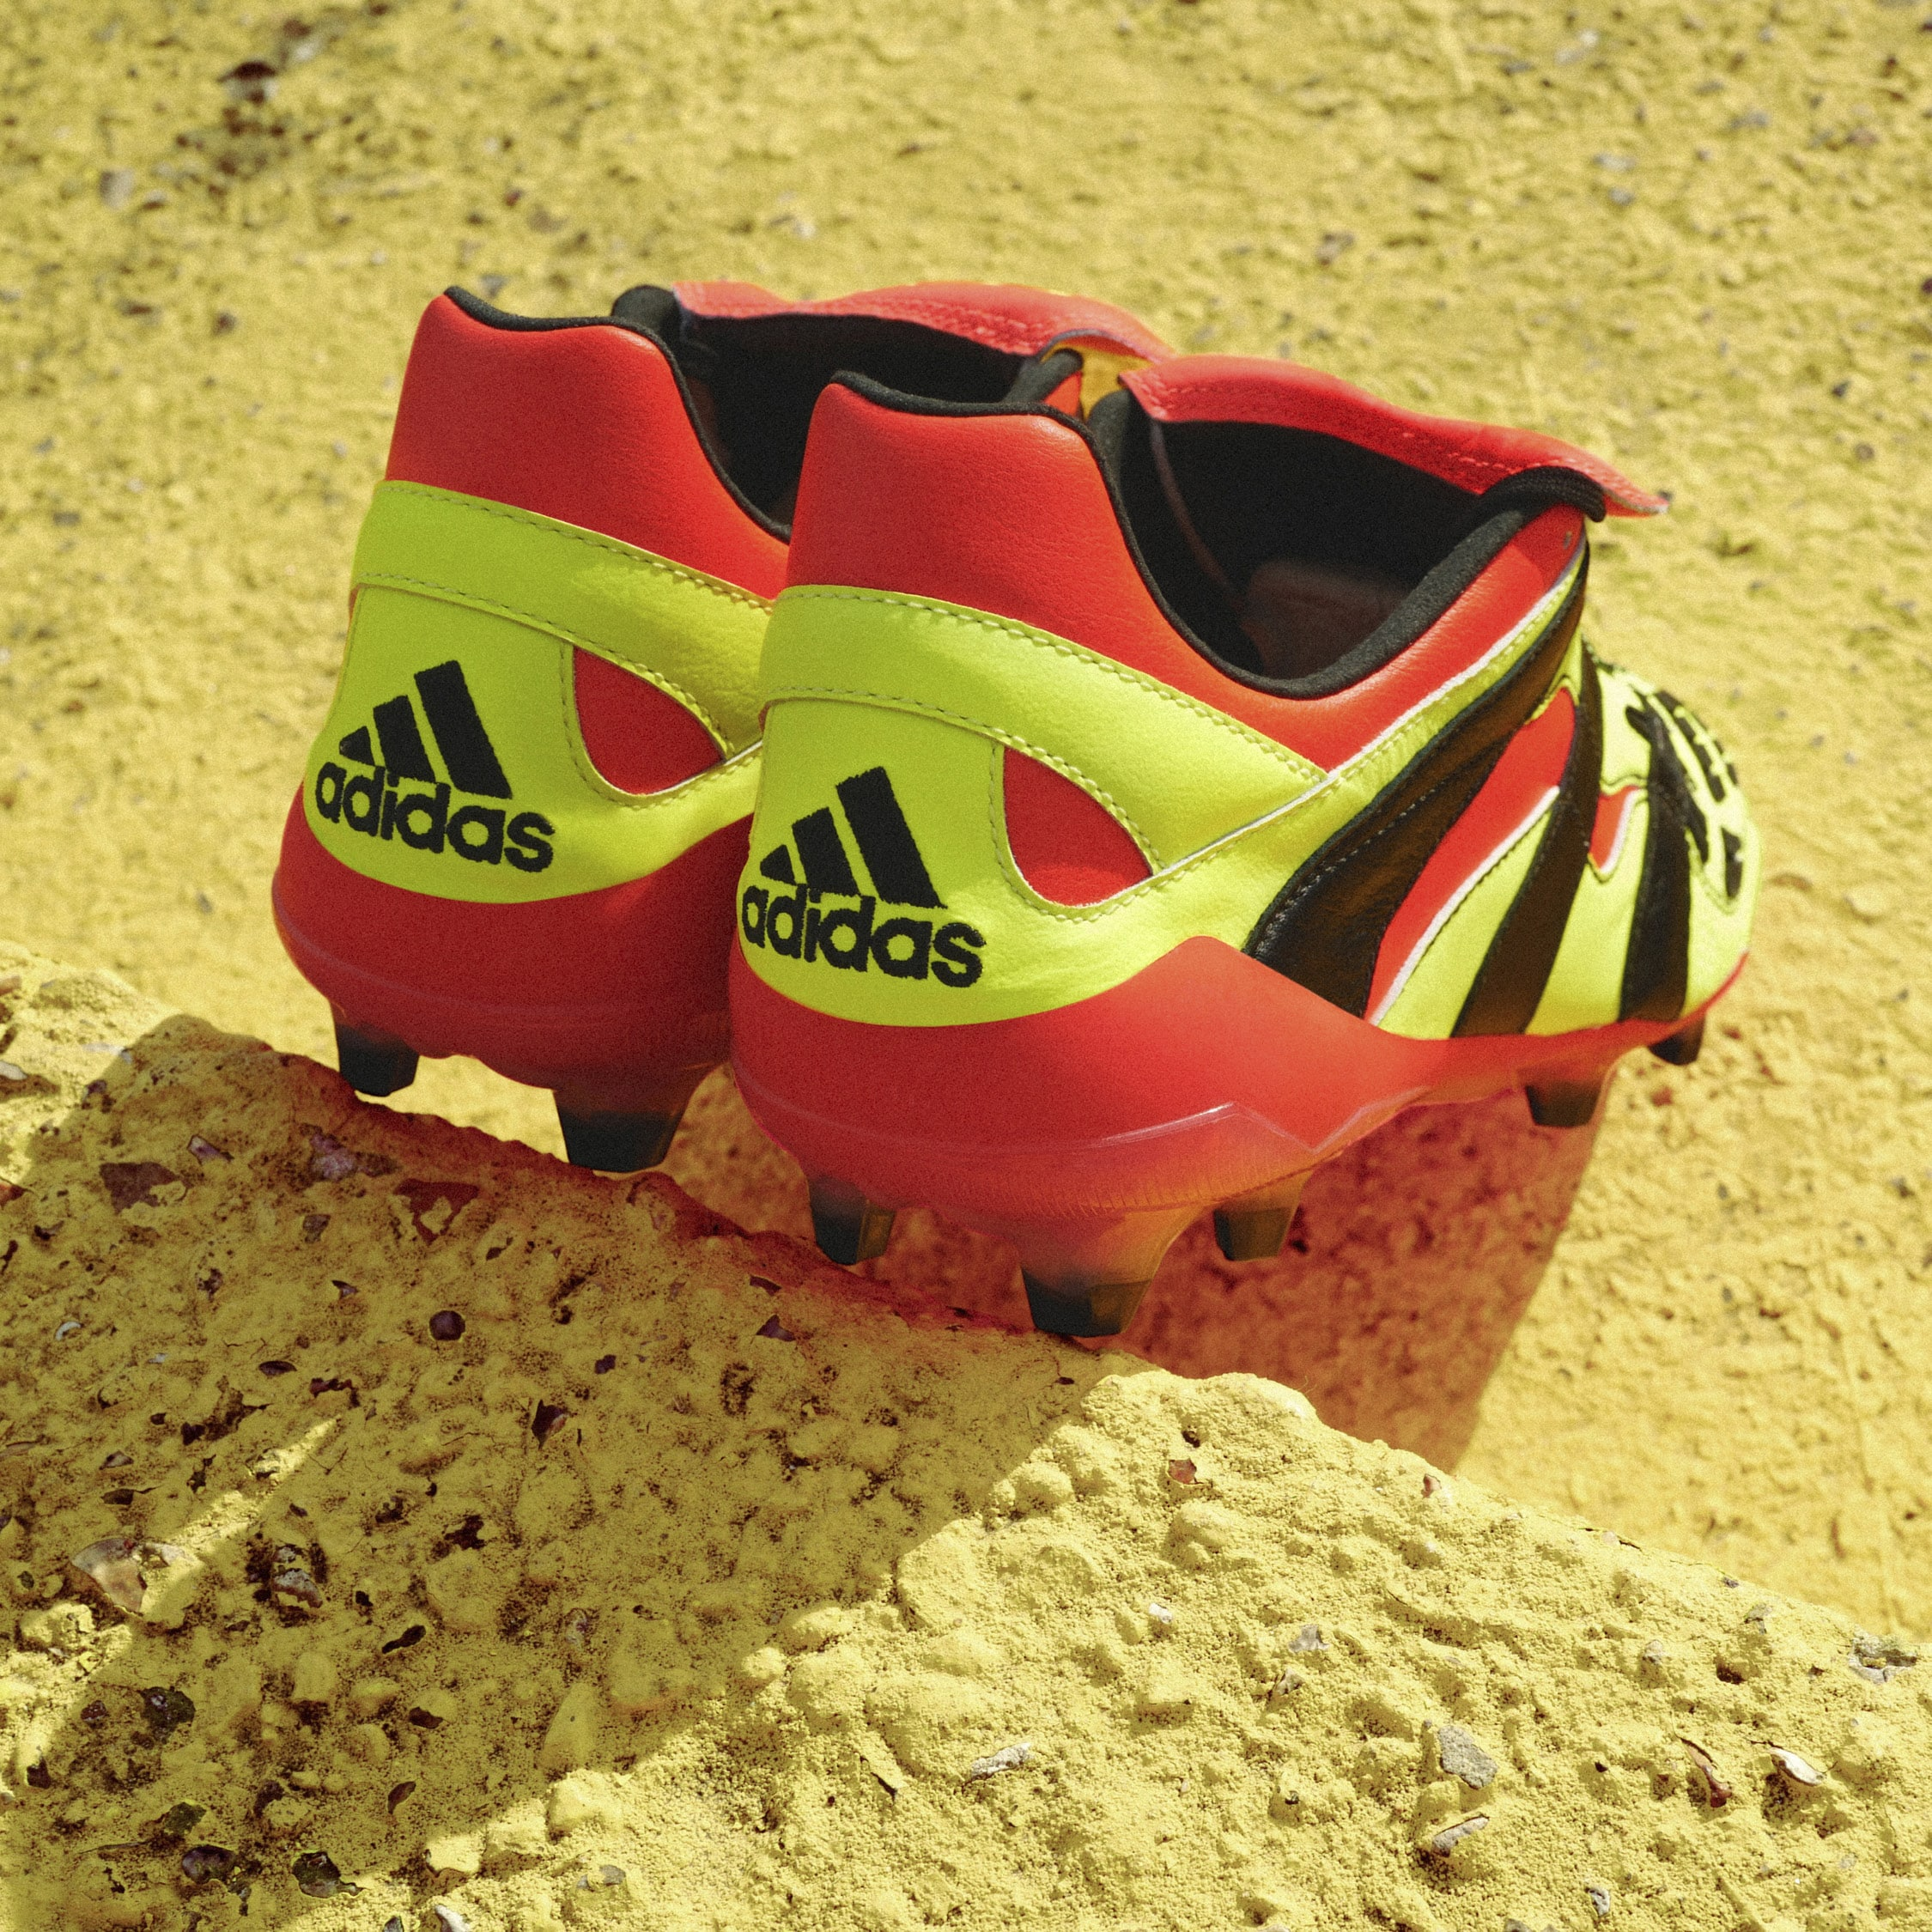 Chaussures-football-adidas-predator-accelerator-electricity-2018-juillet-2018-2